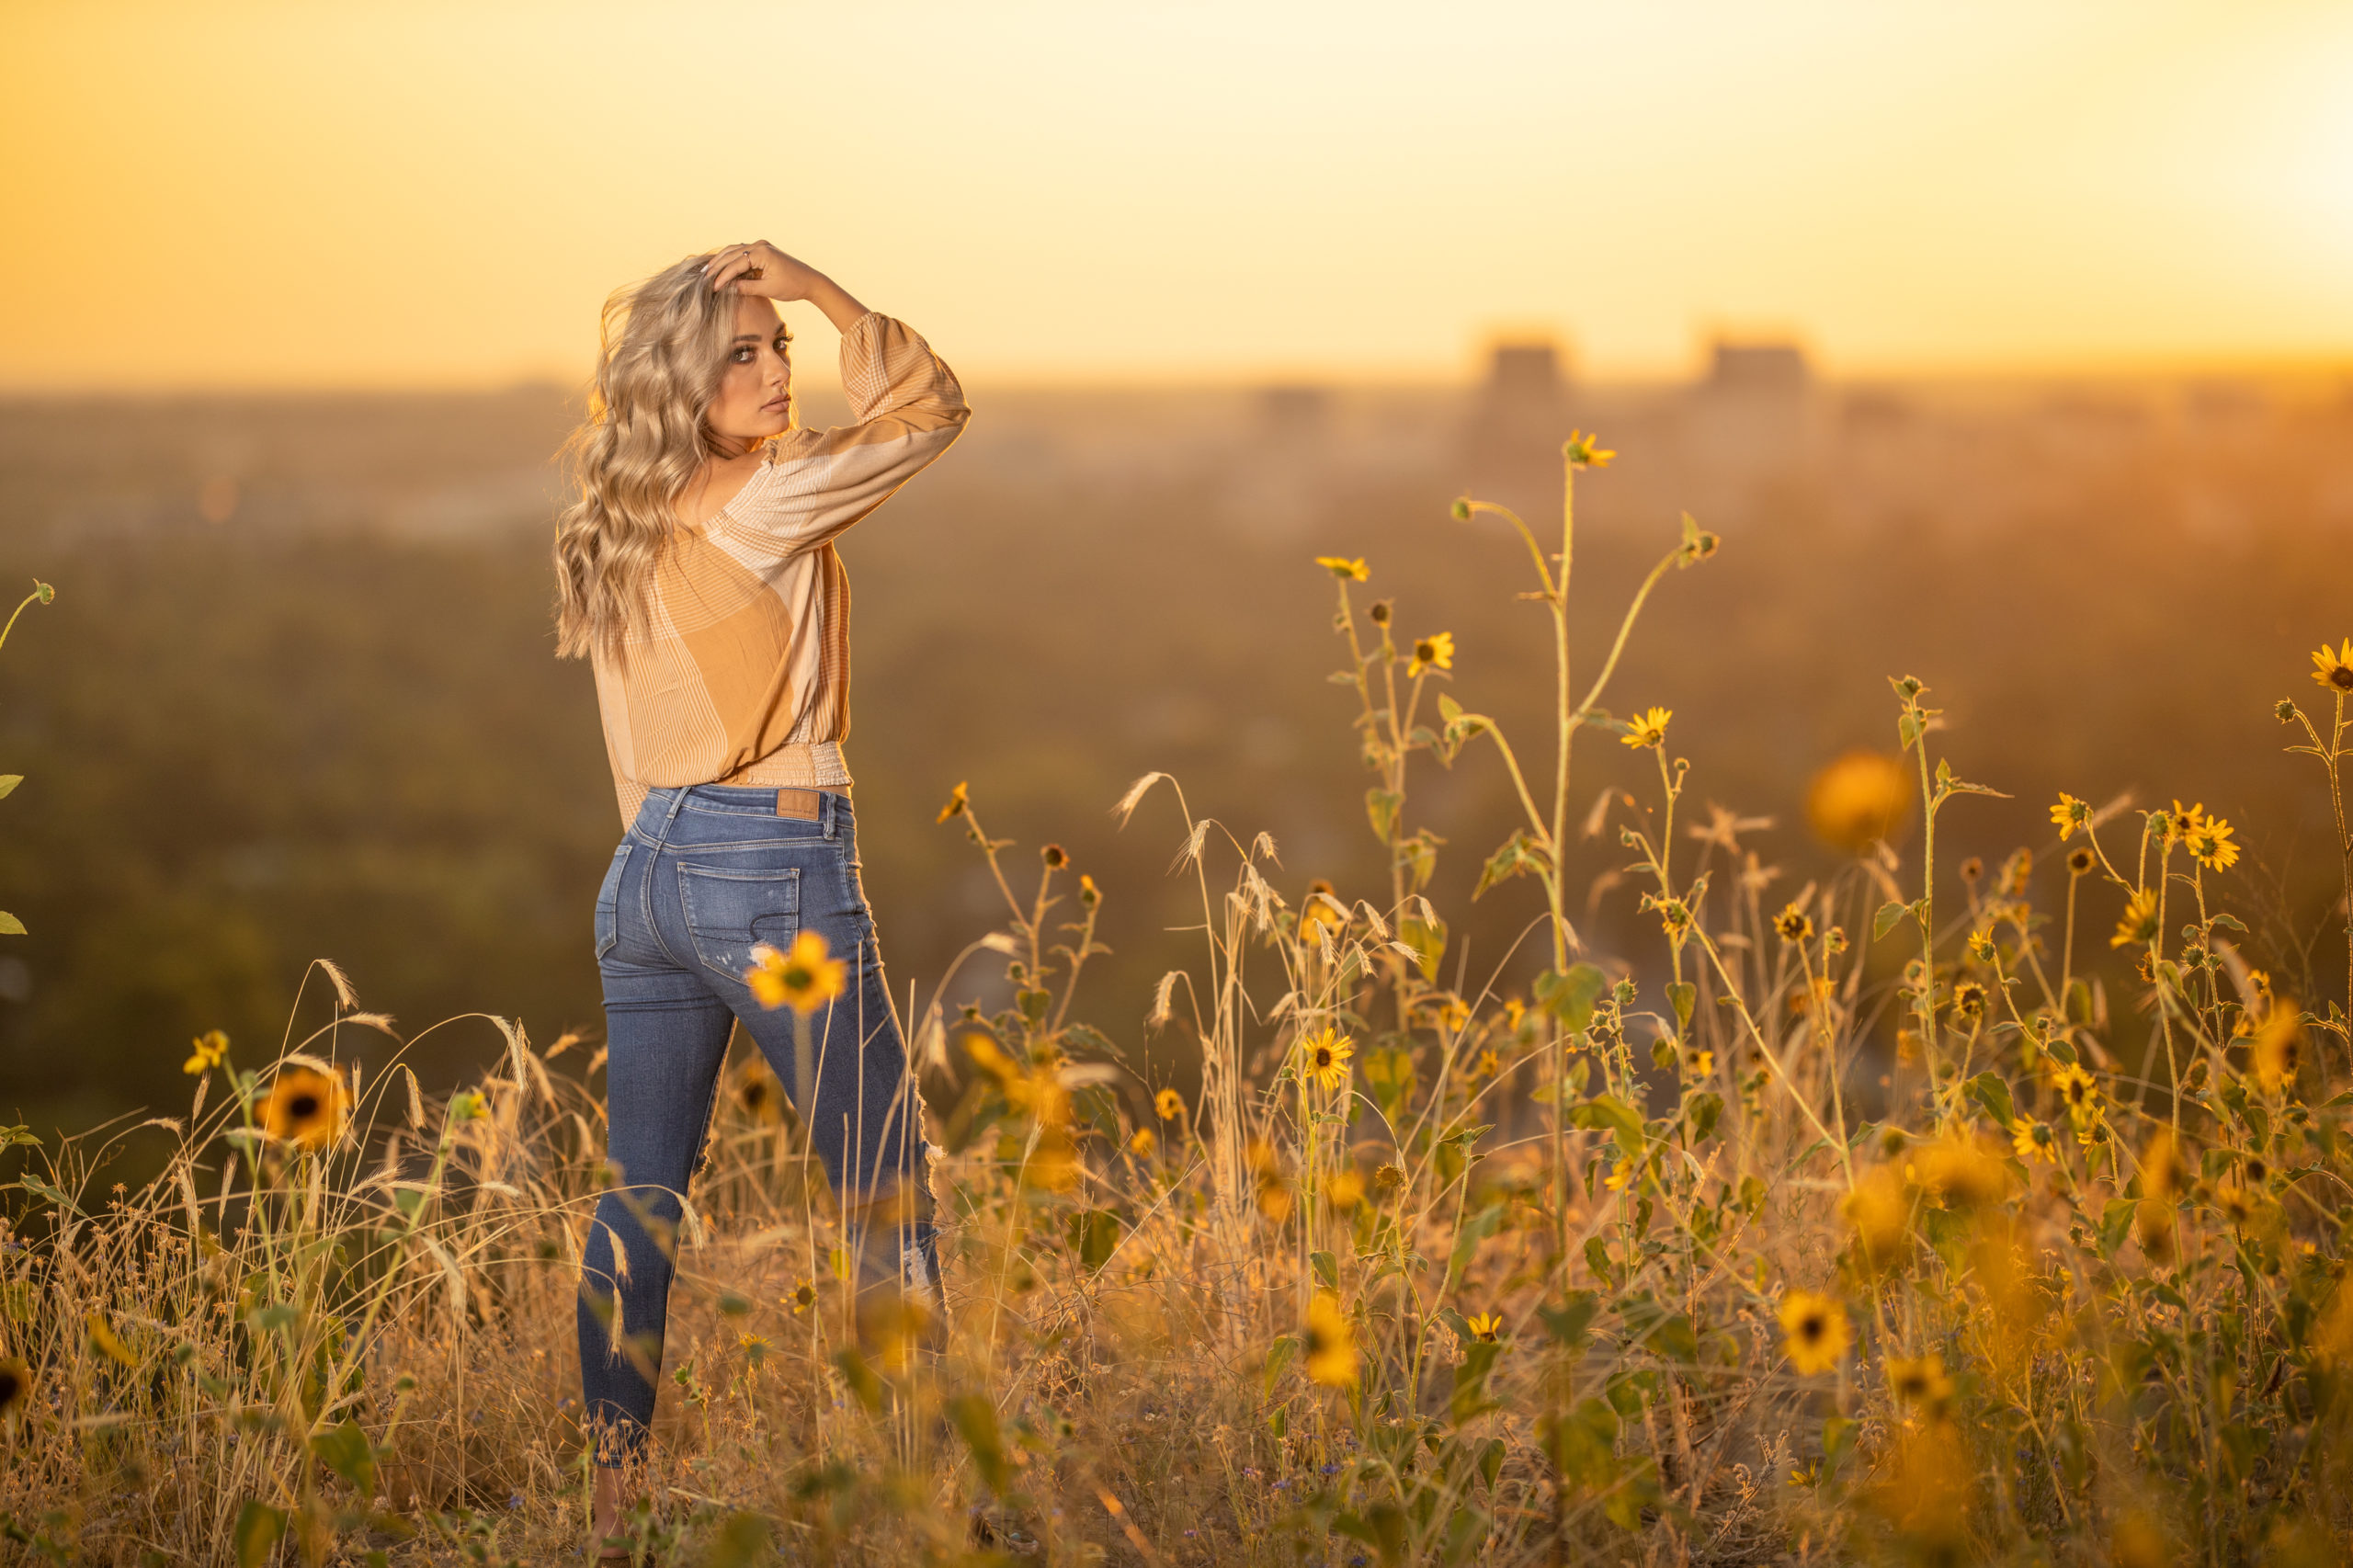 high school senior girl in a field of sunflowers at sunset over looking the city of Boise, Id